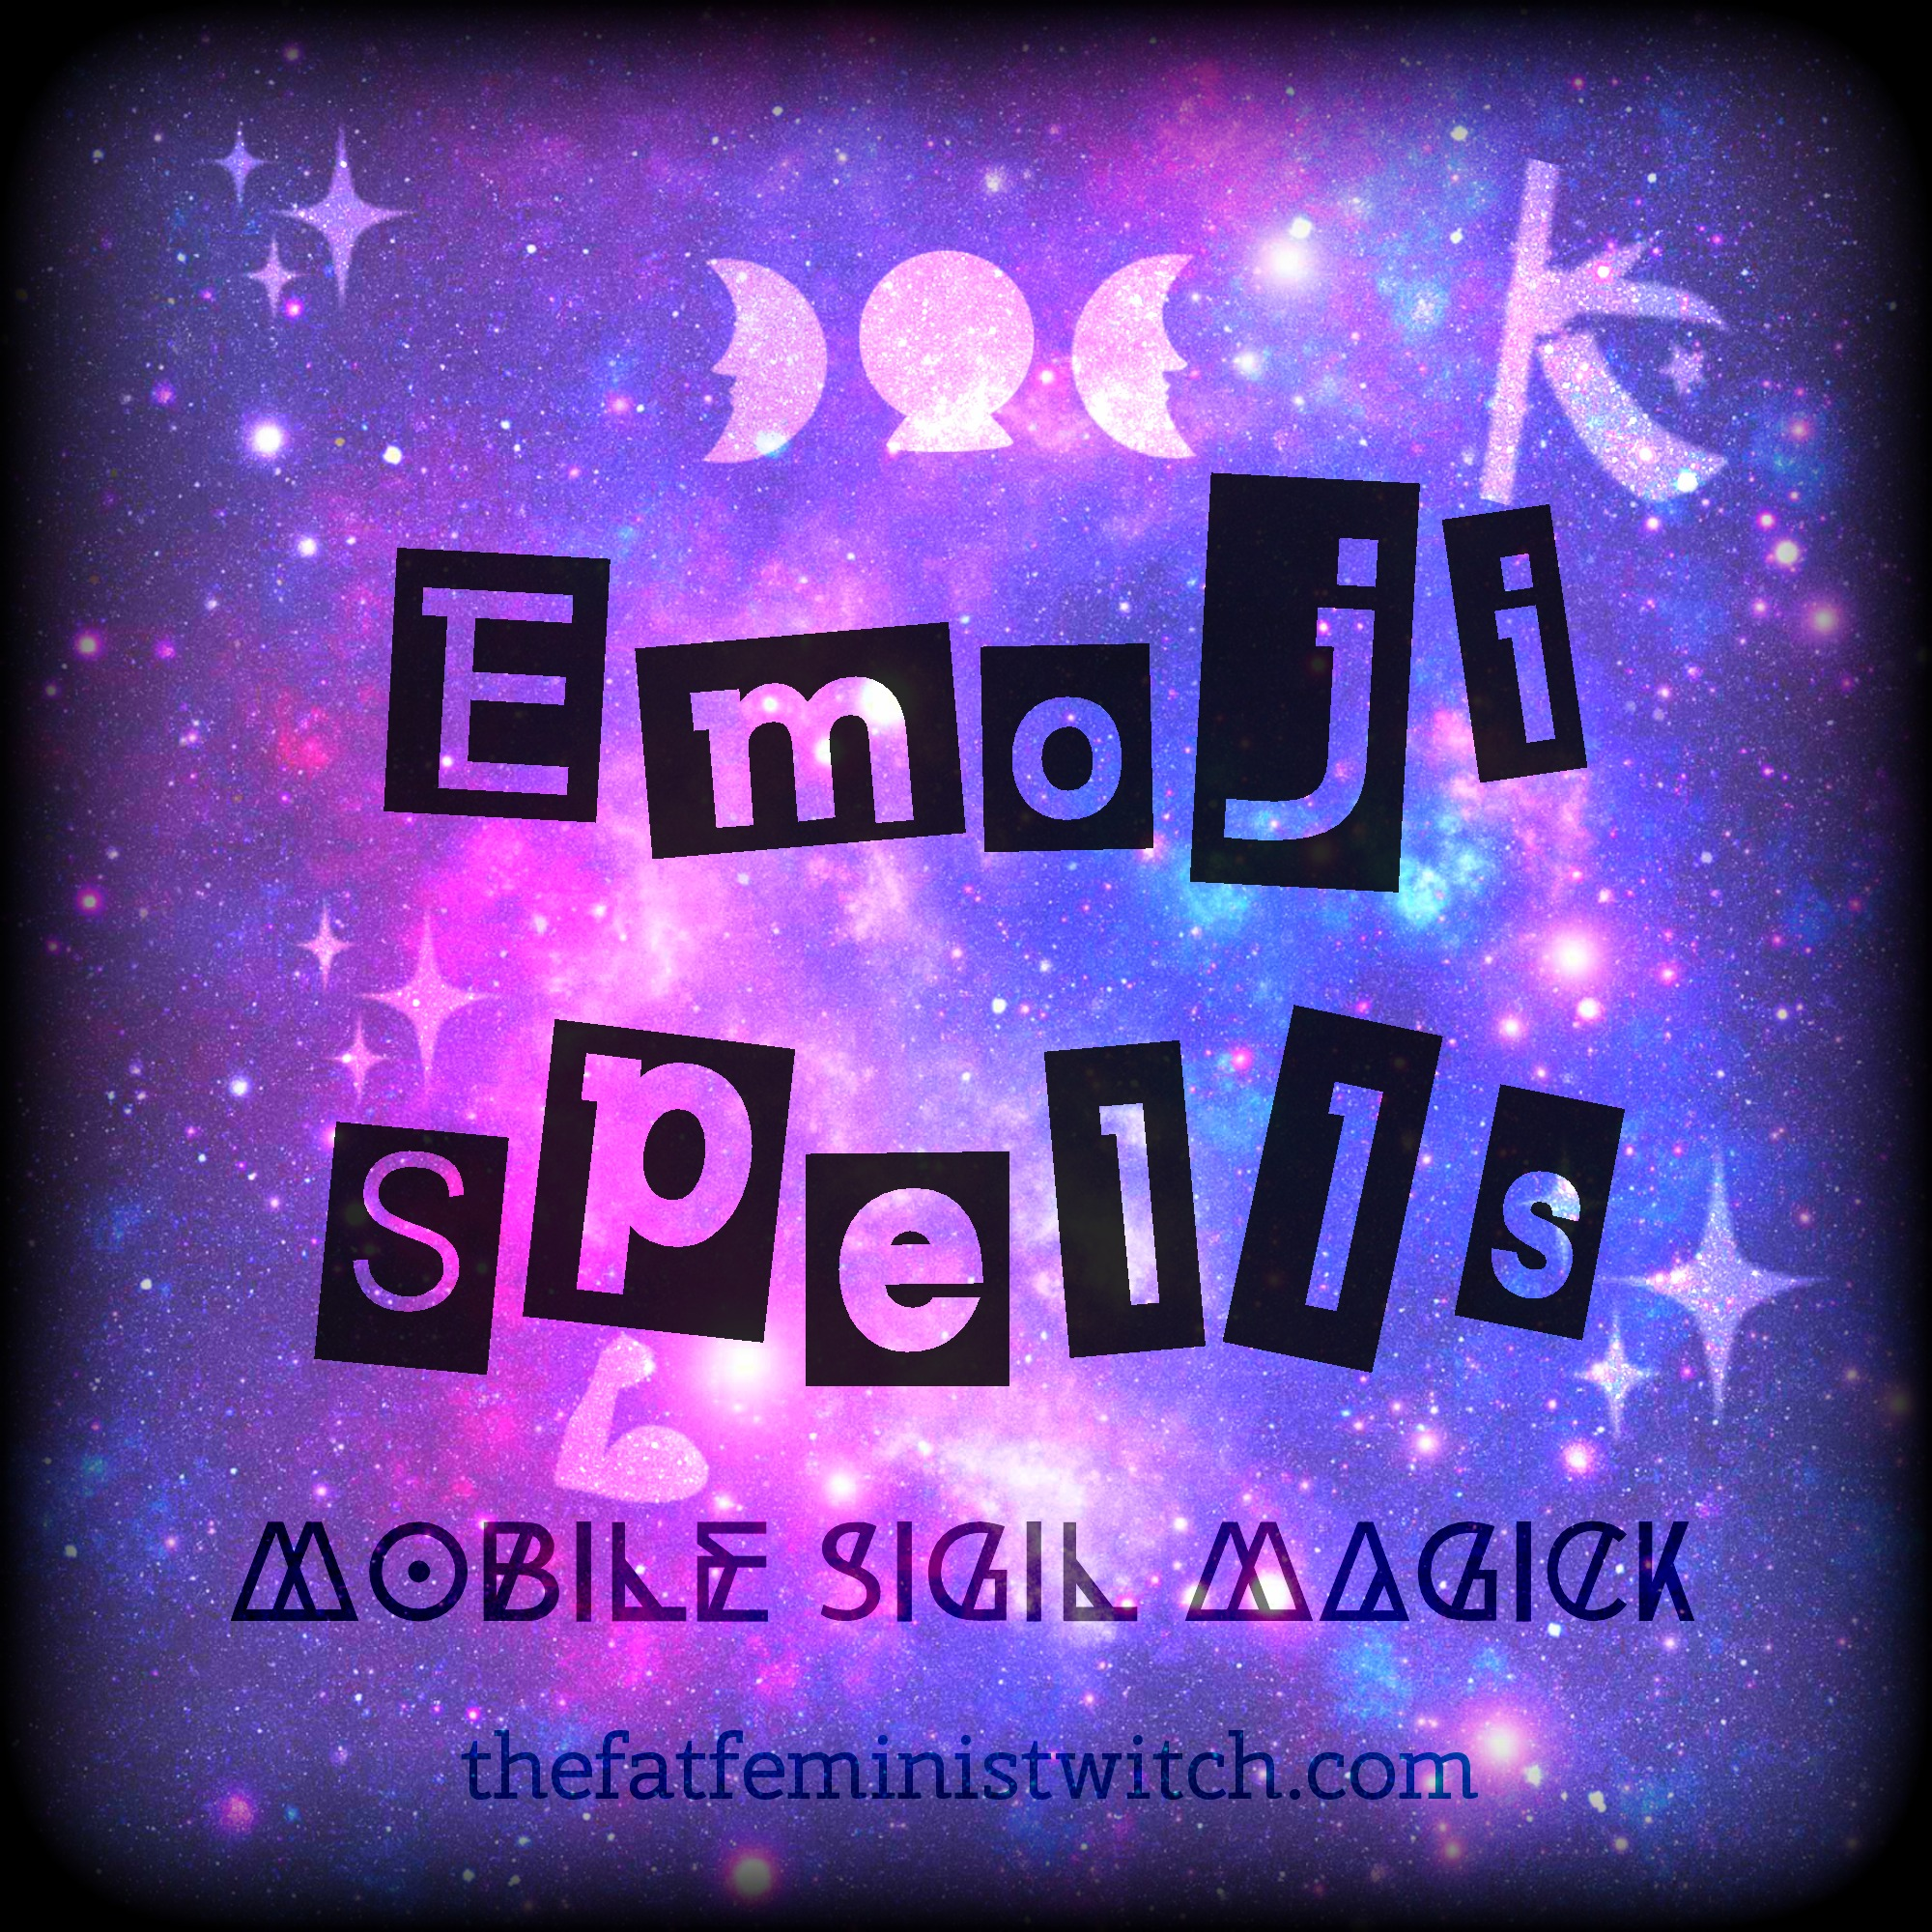 Emoji Spells Mobile Sigil Magick The Fat Feminist Witch